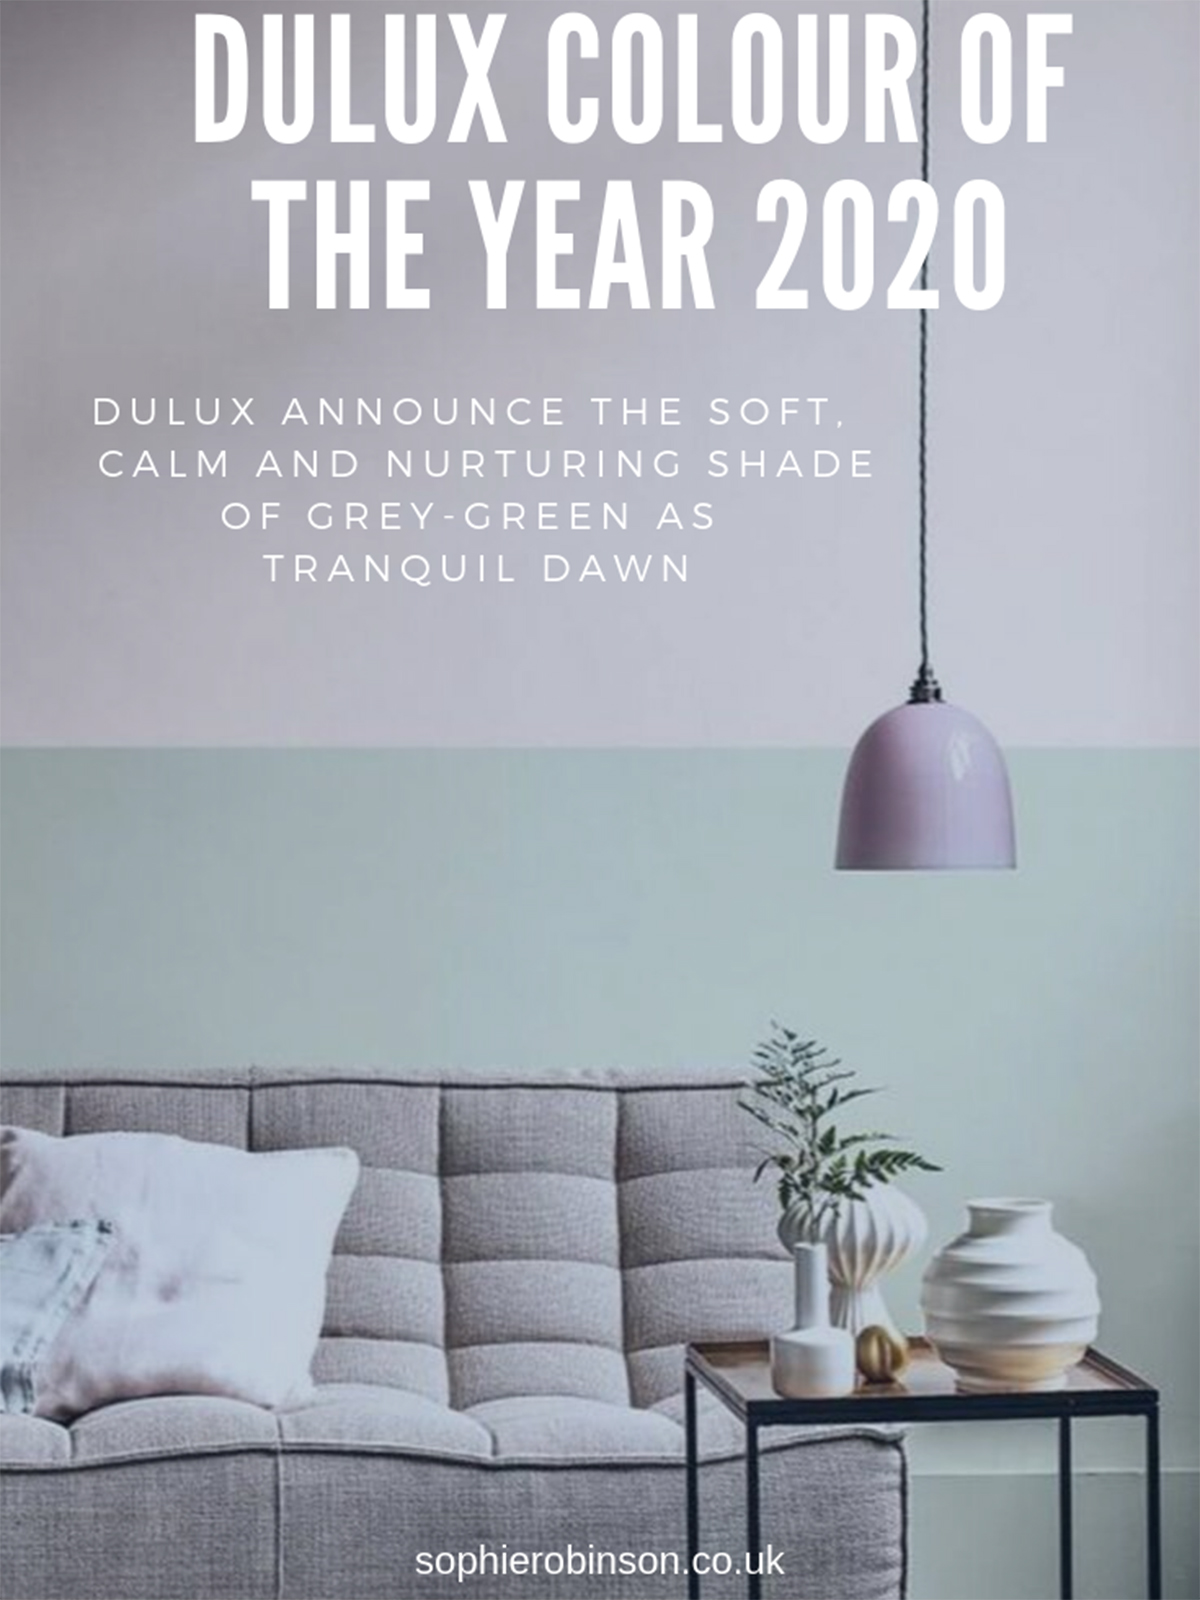 Dulux announce the Colour of the year 2020 as Tranquil Dawn, a soft muted green. #dulux #sophierobinson #colouroftheyear